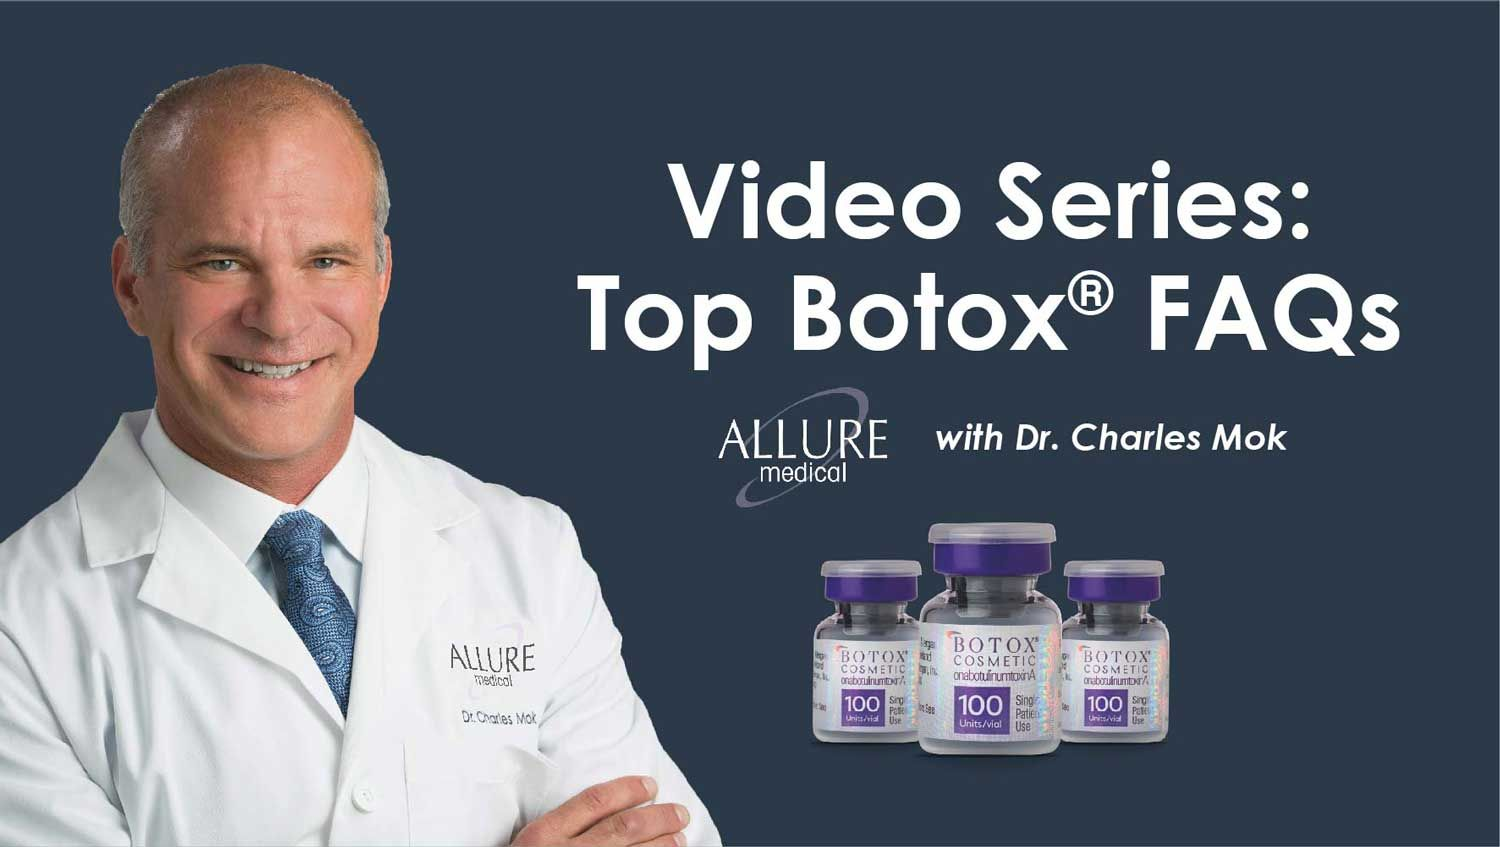 top botox faqs with dr. charles mok of allure medical